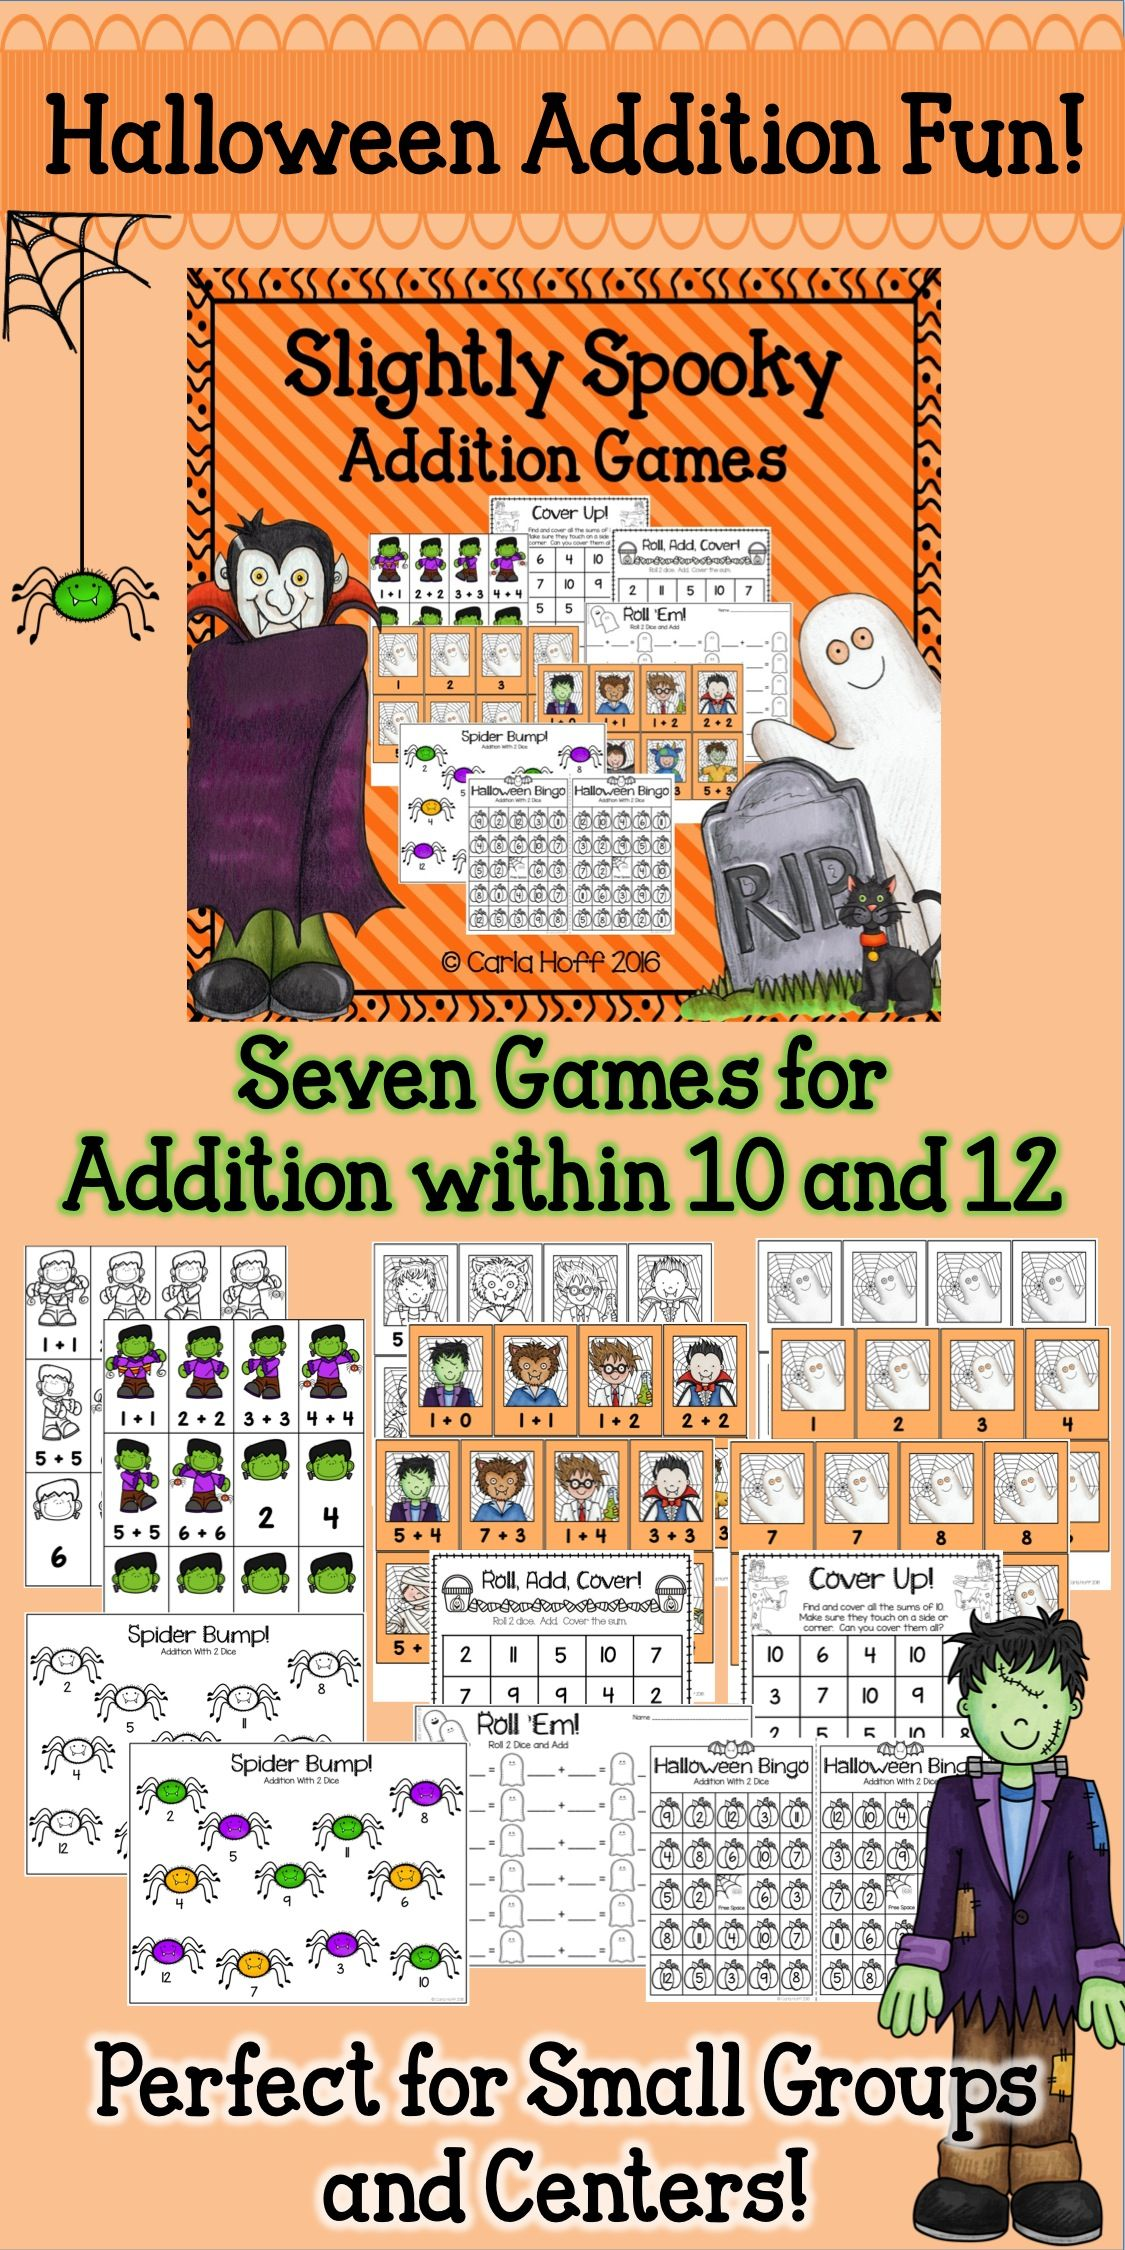 click here for easy prep halloween addition games perfect for small groups and centers - Halloween Games For Groups